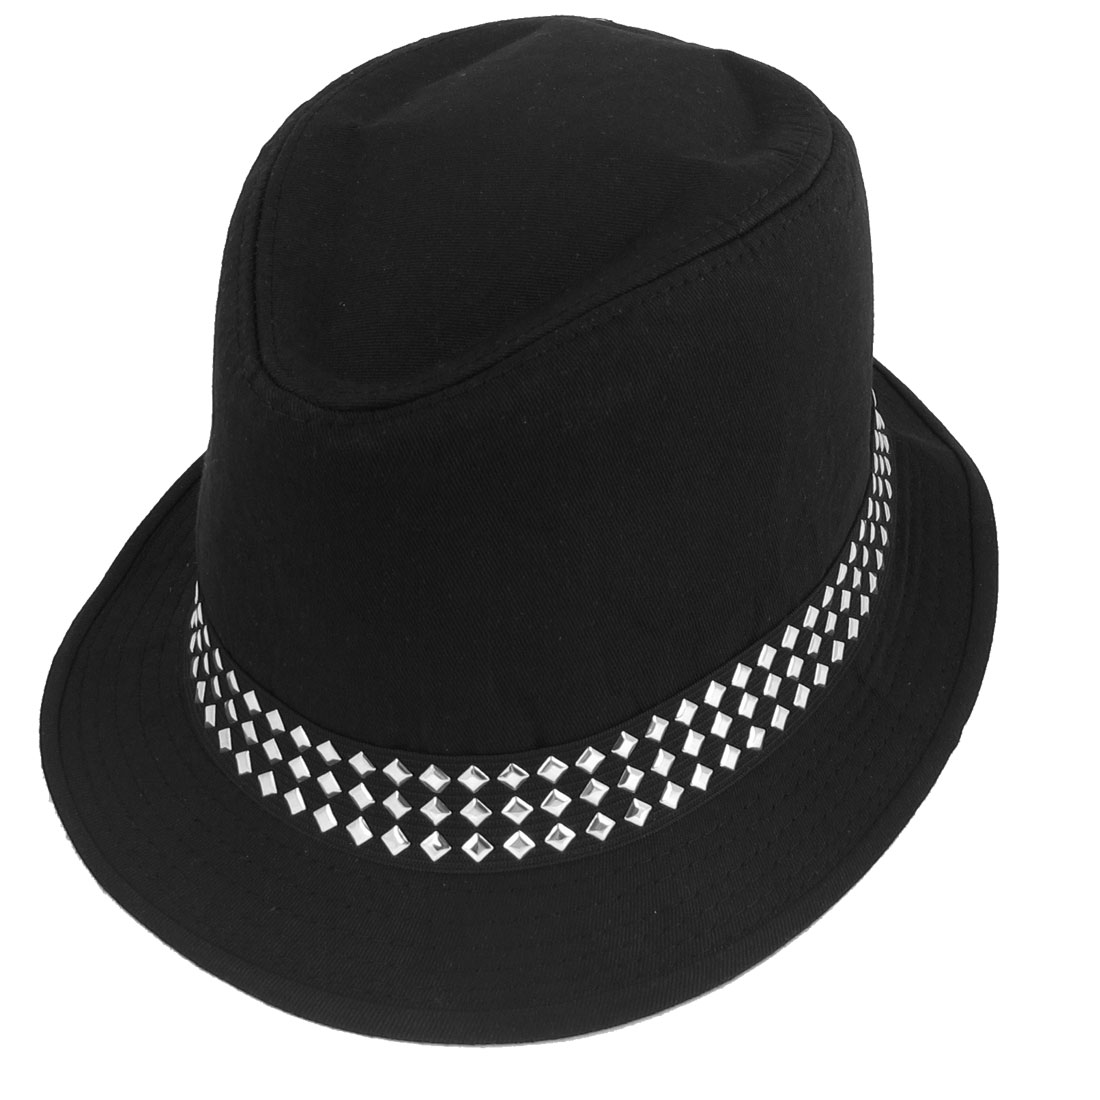 Ladies Metal Stud Decor Black Fabric Fedora Trilby Hat